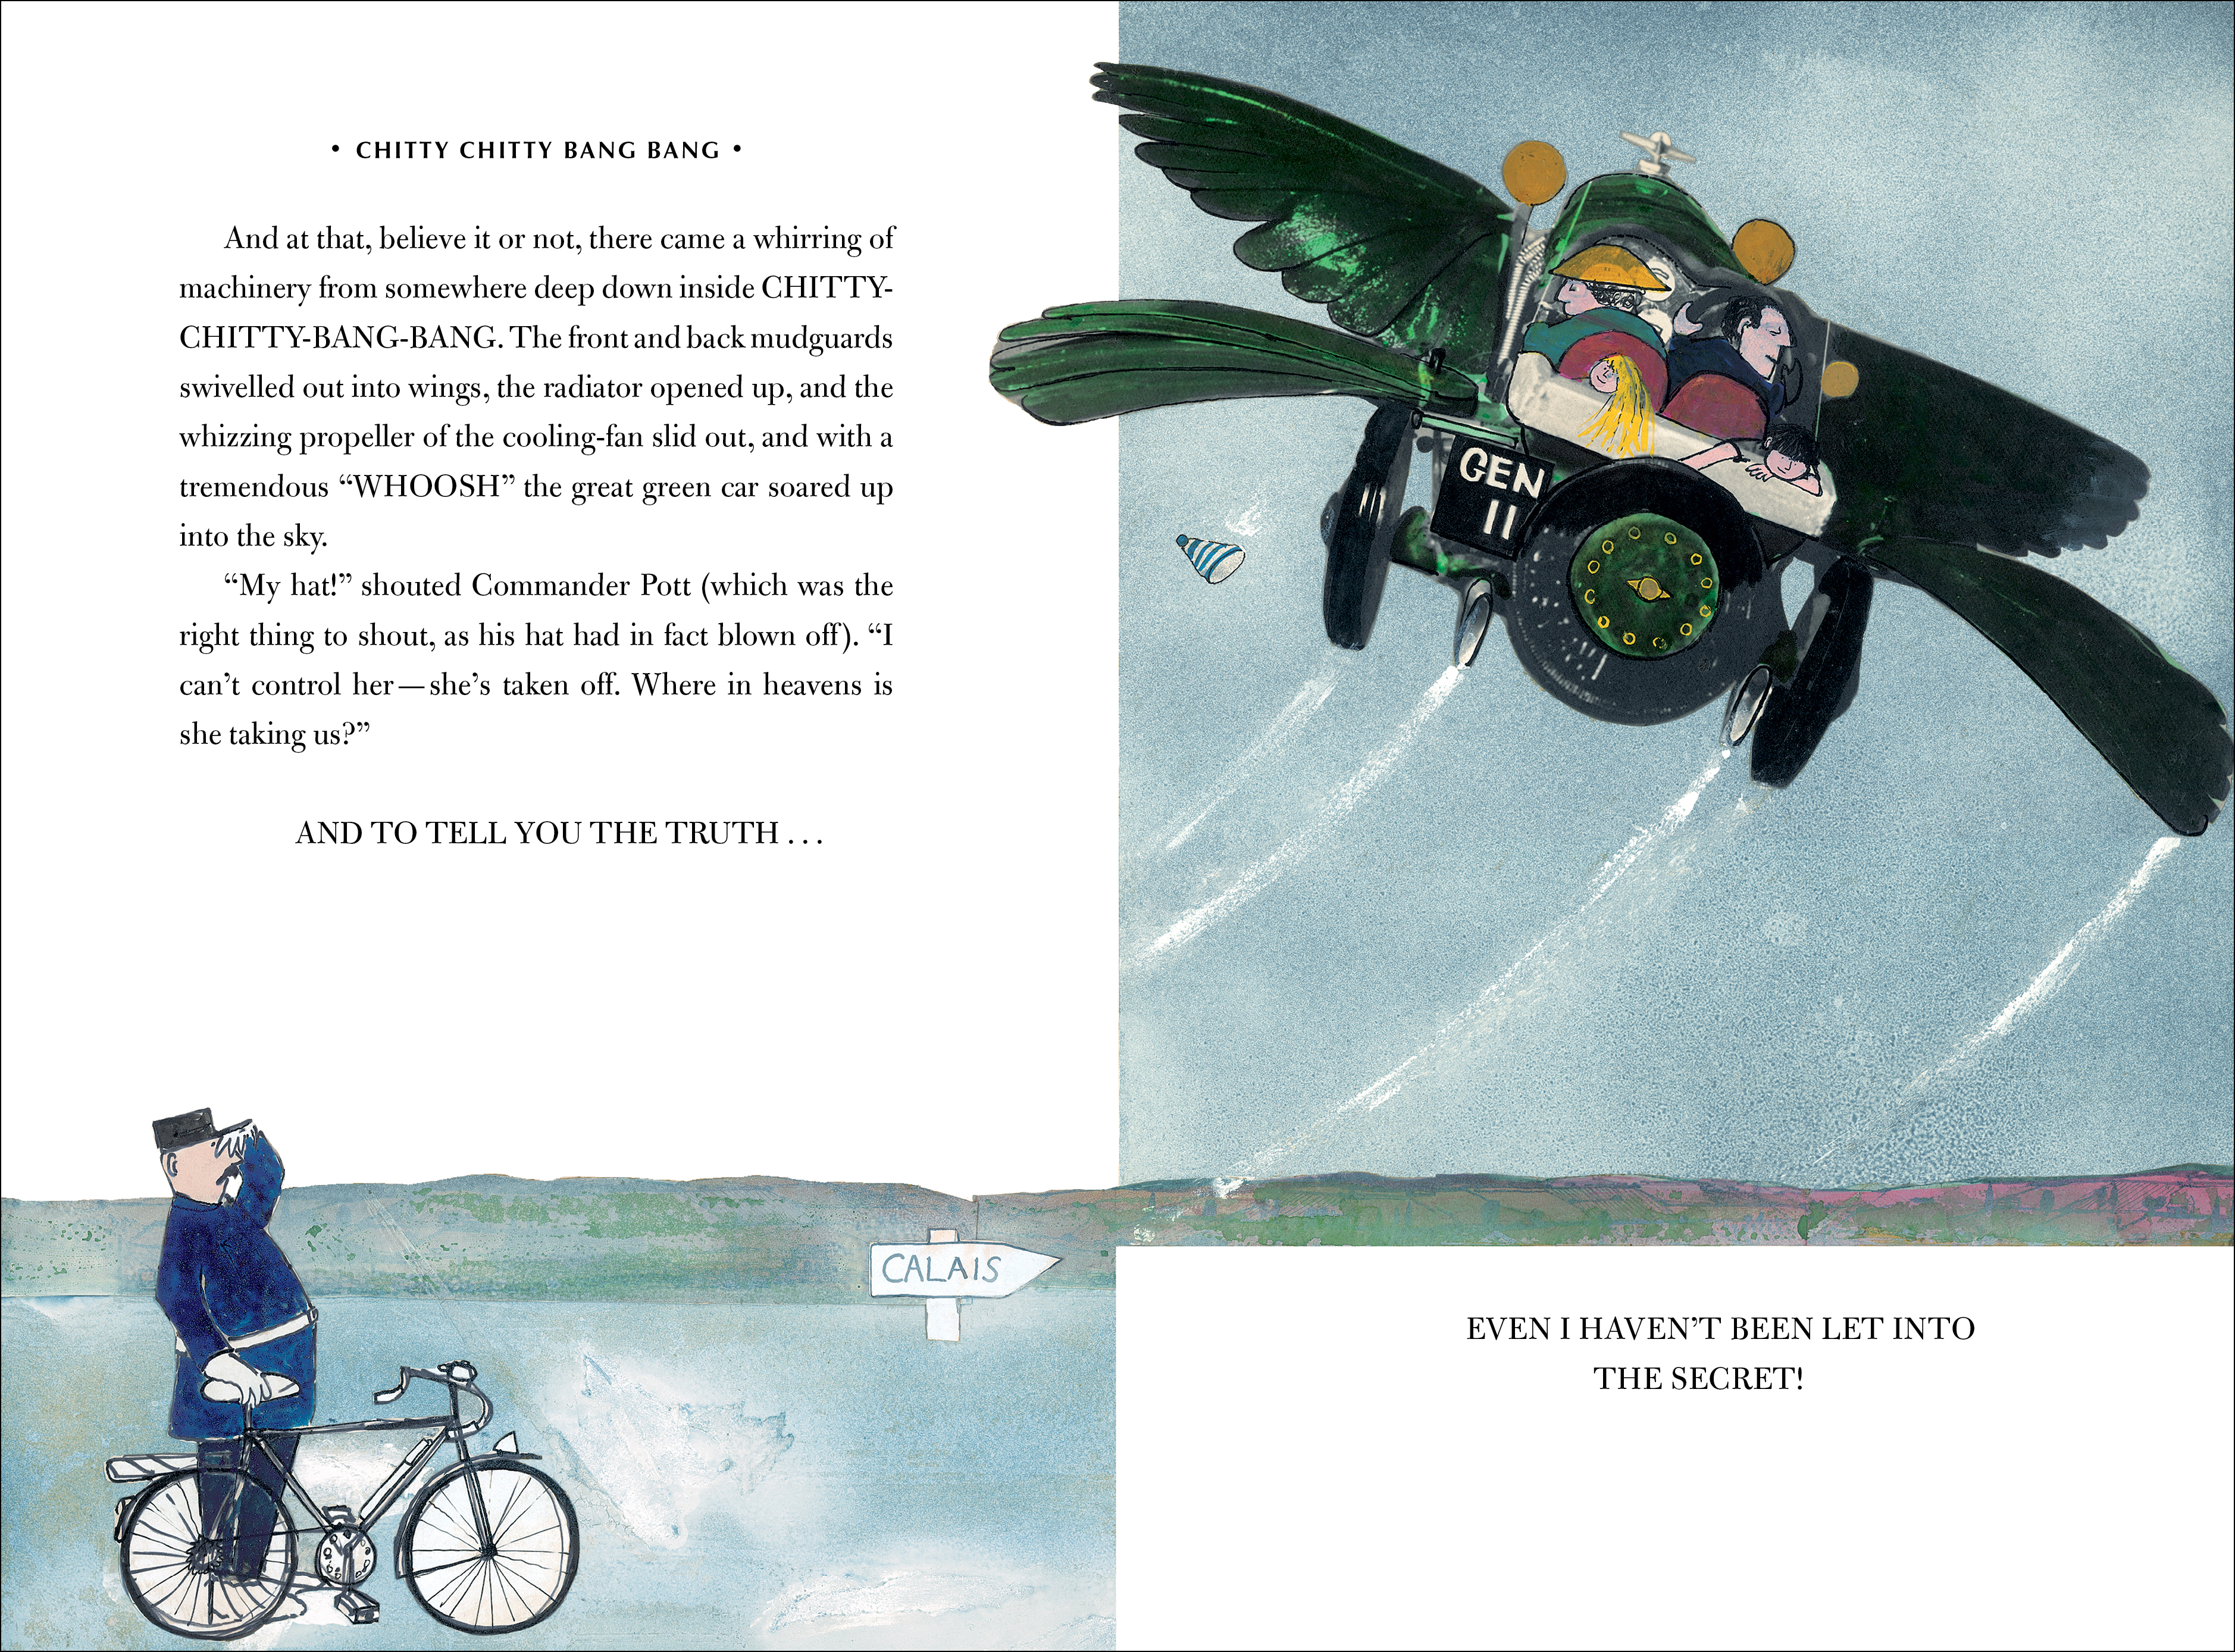 Text spread for CHITTY CHITTY BANG BANG